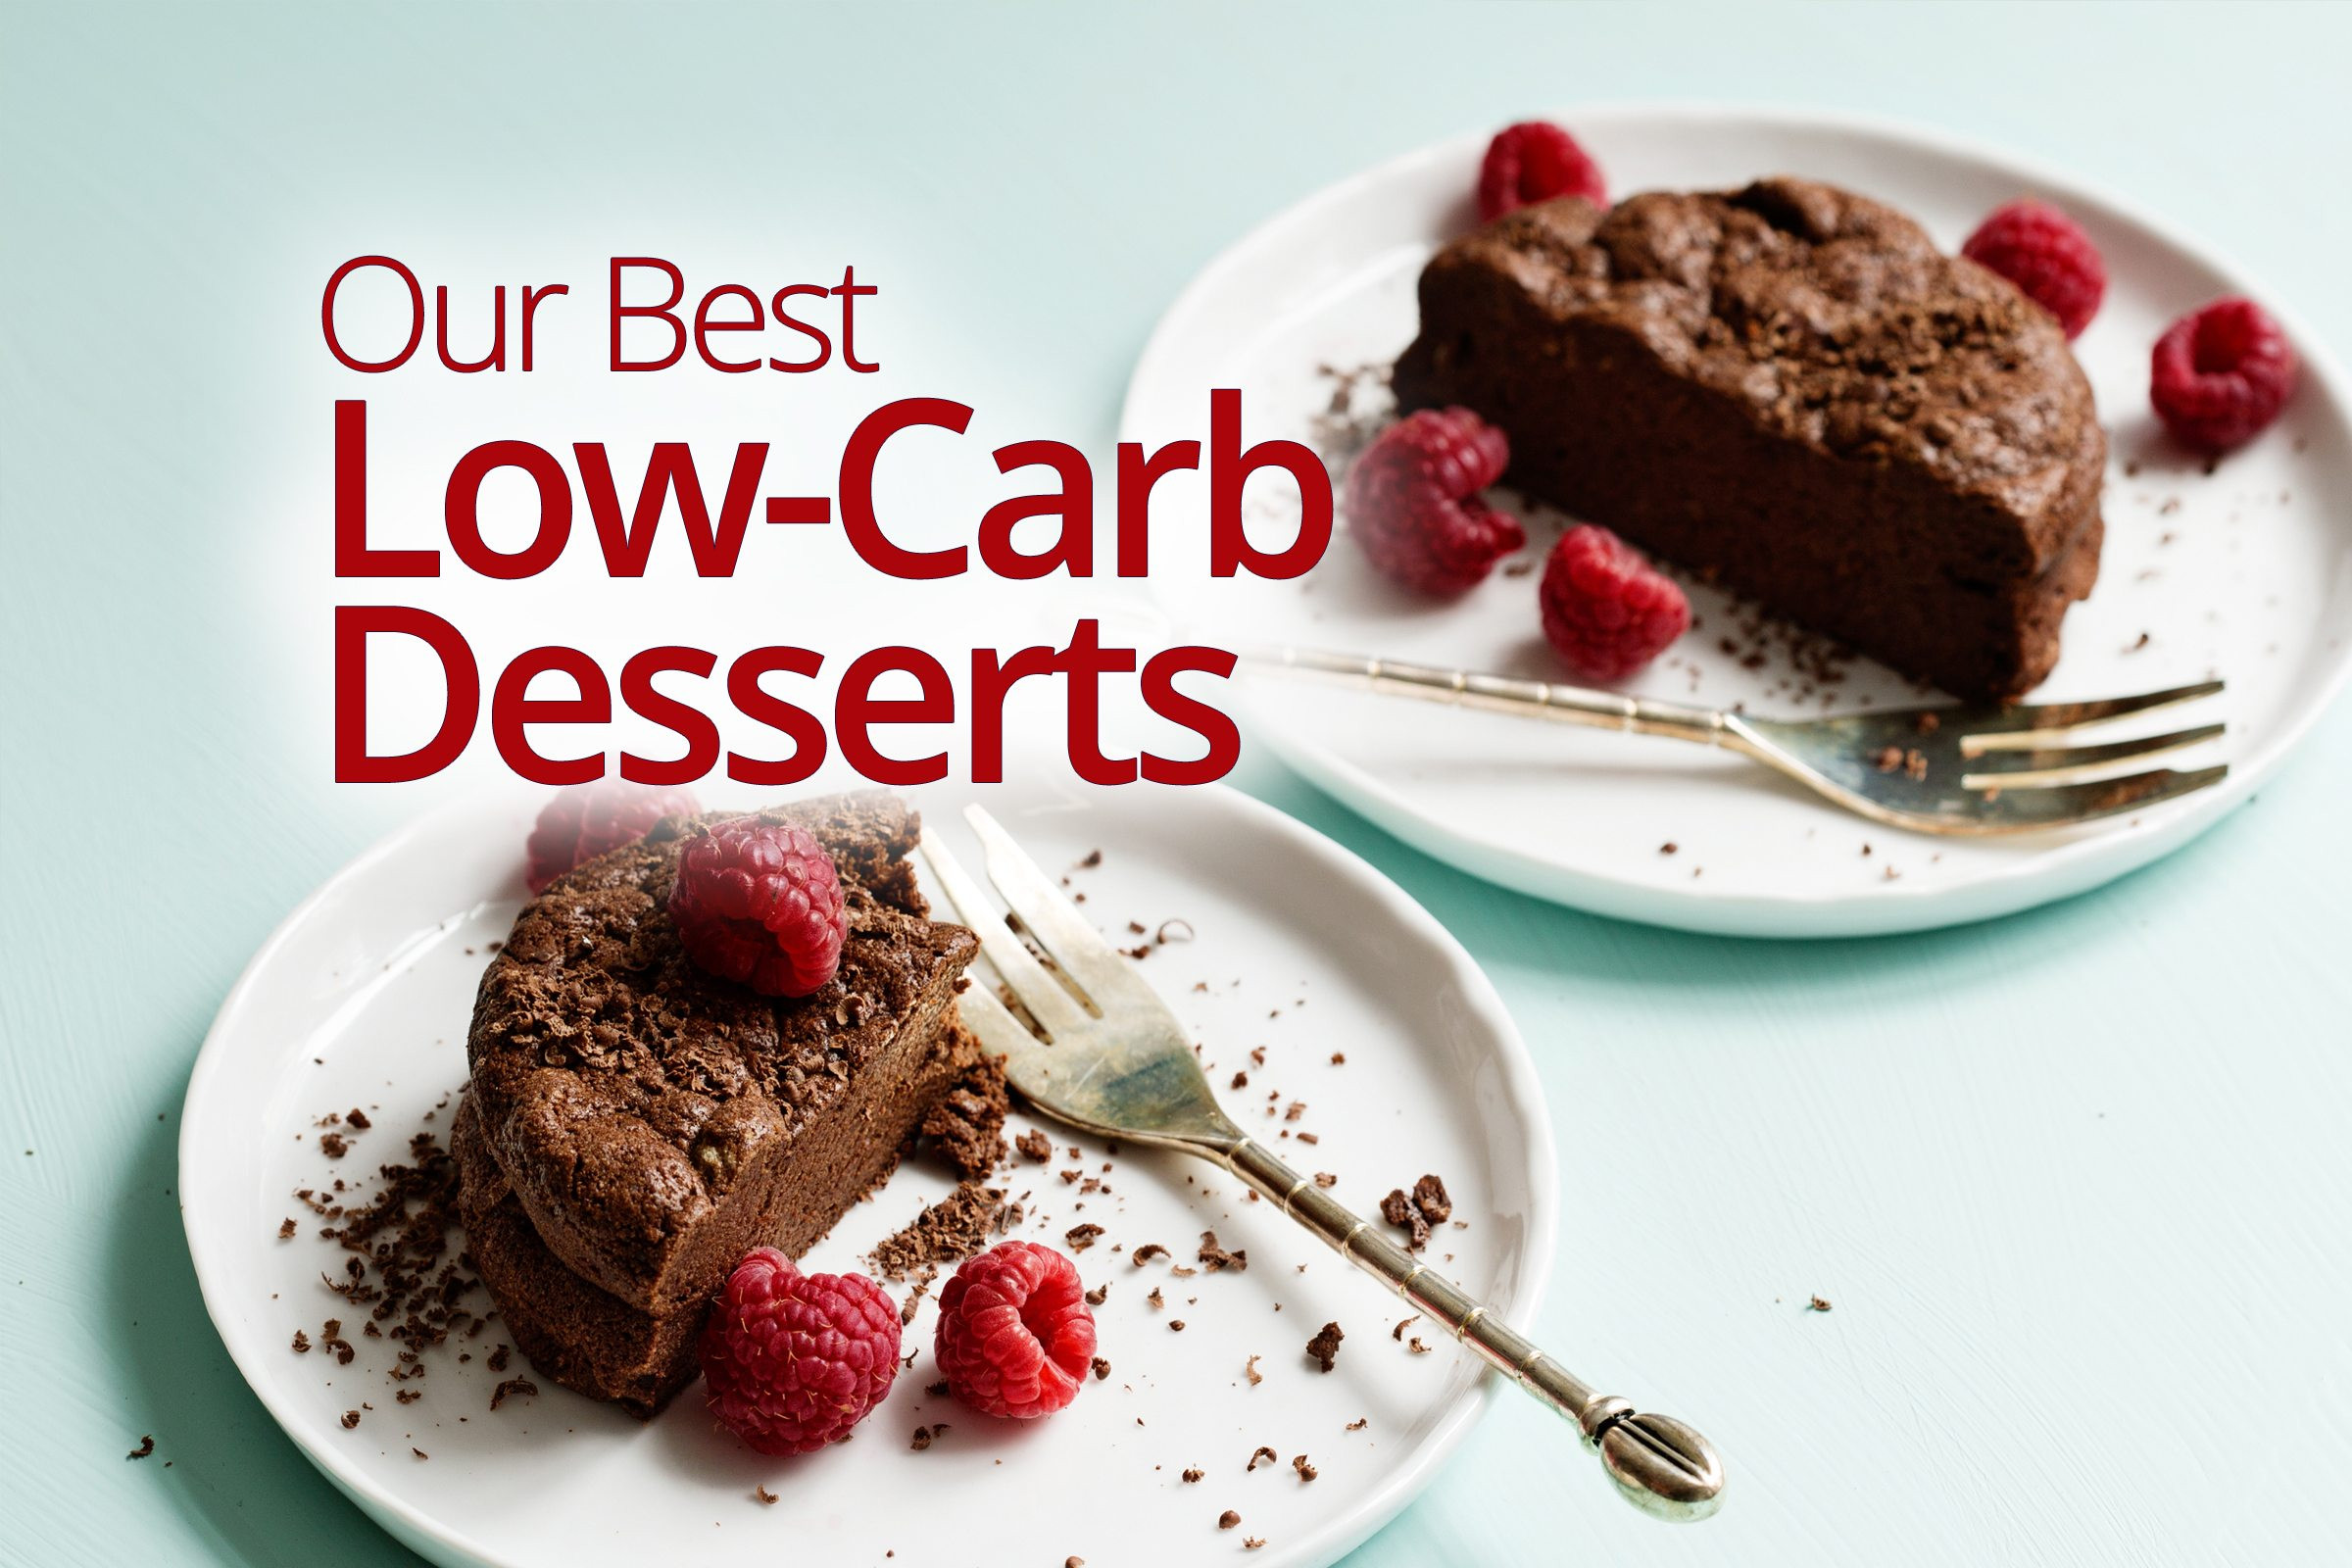 Low Carb Desserts Fast Food  Our Best Low Carb Desserts Diet Doctor